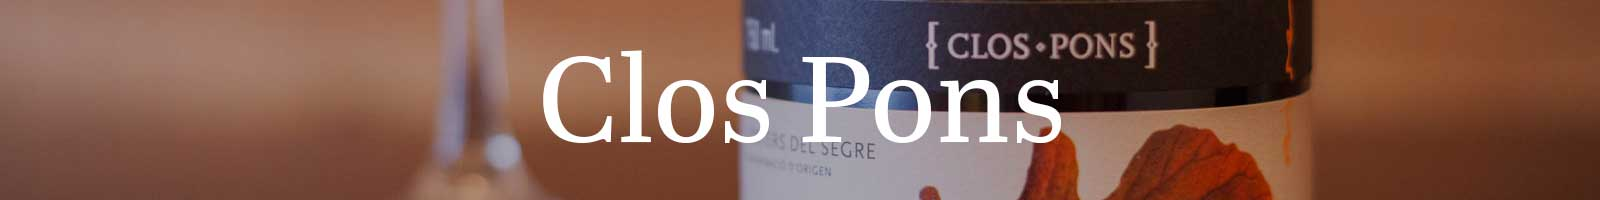 Clos Pons - Essential Winemaker of Spain